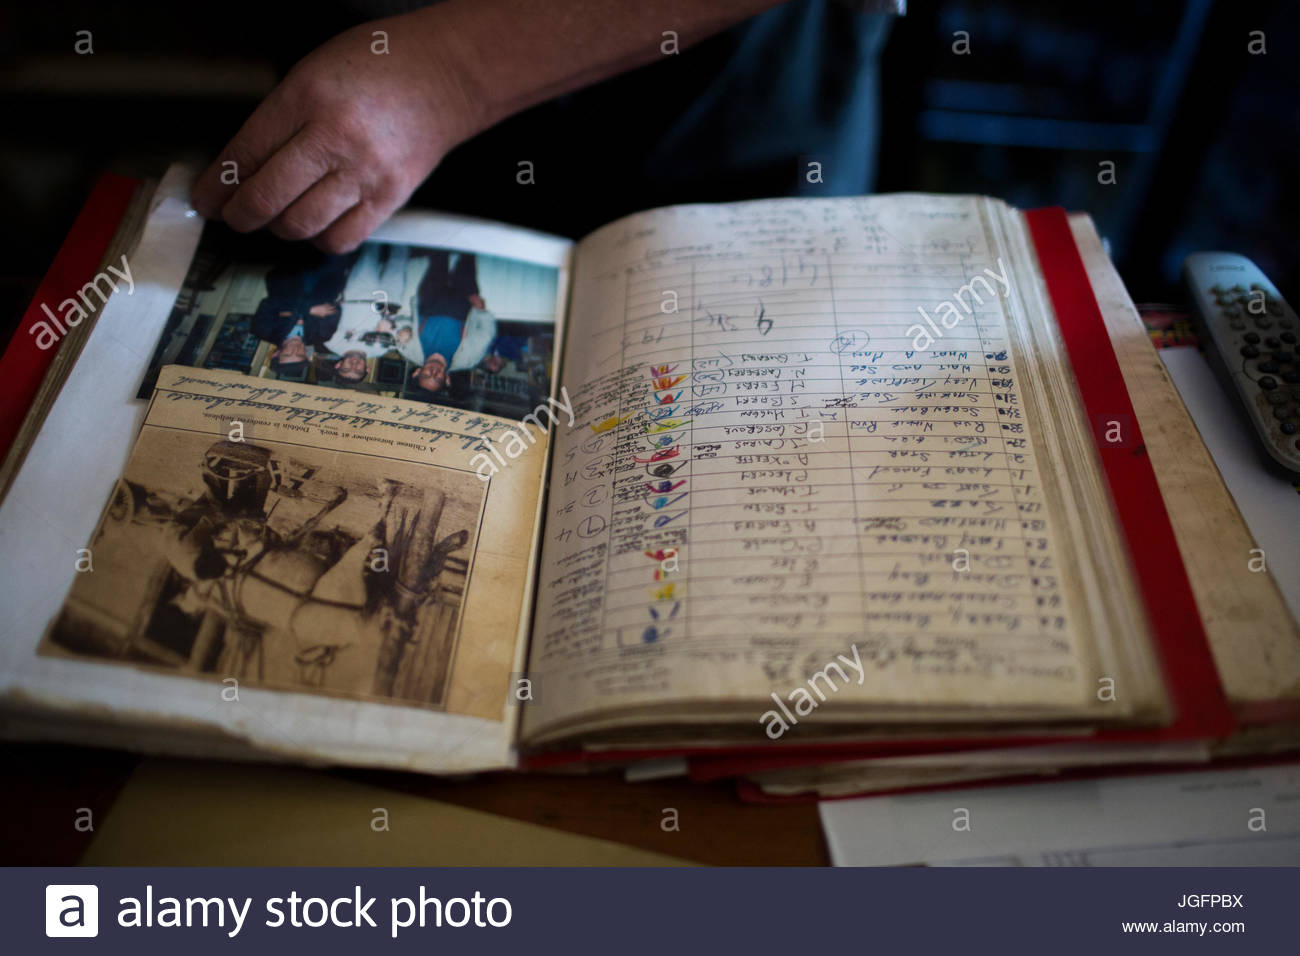 Inside the J. Curran pub in Dingle, the owner leafs through an old ledger containing mementos from Irish emigrants. - Stock Image